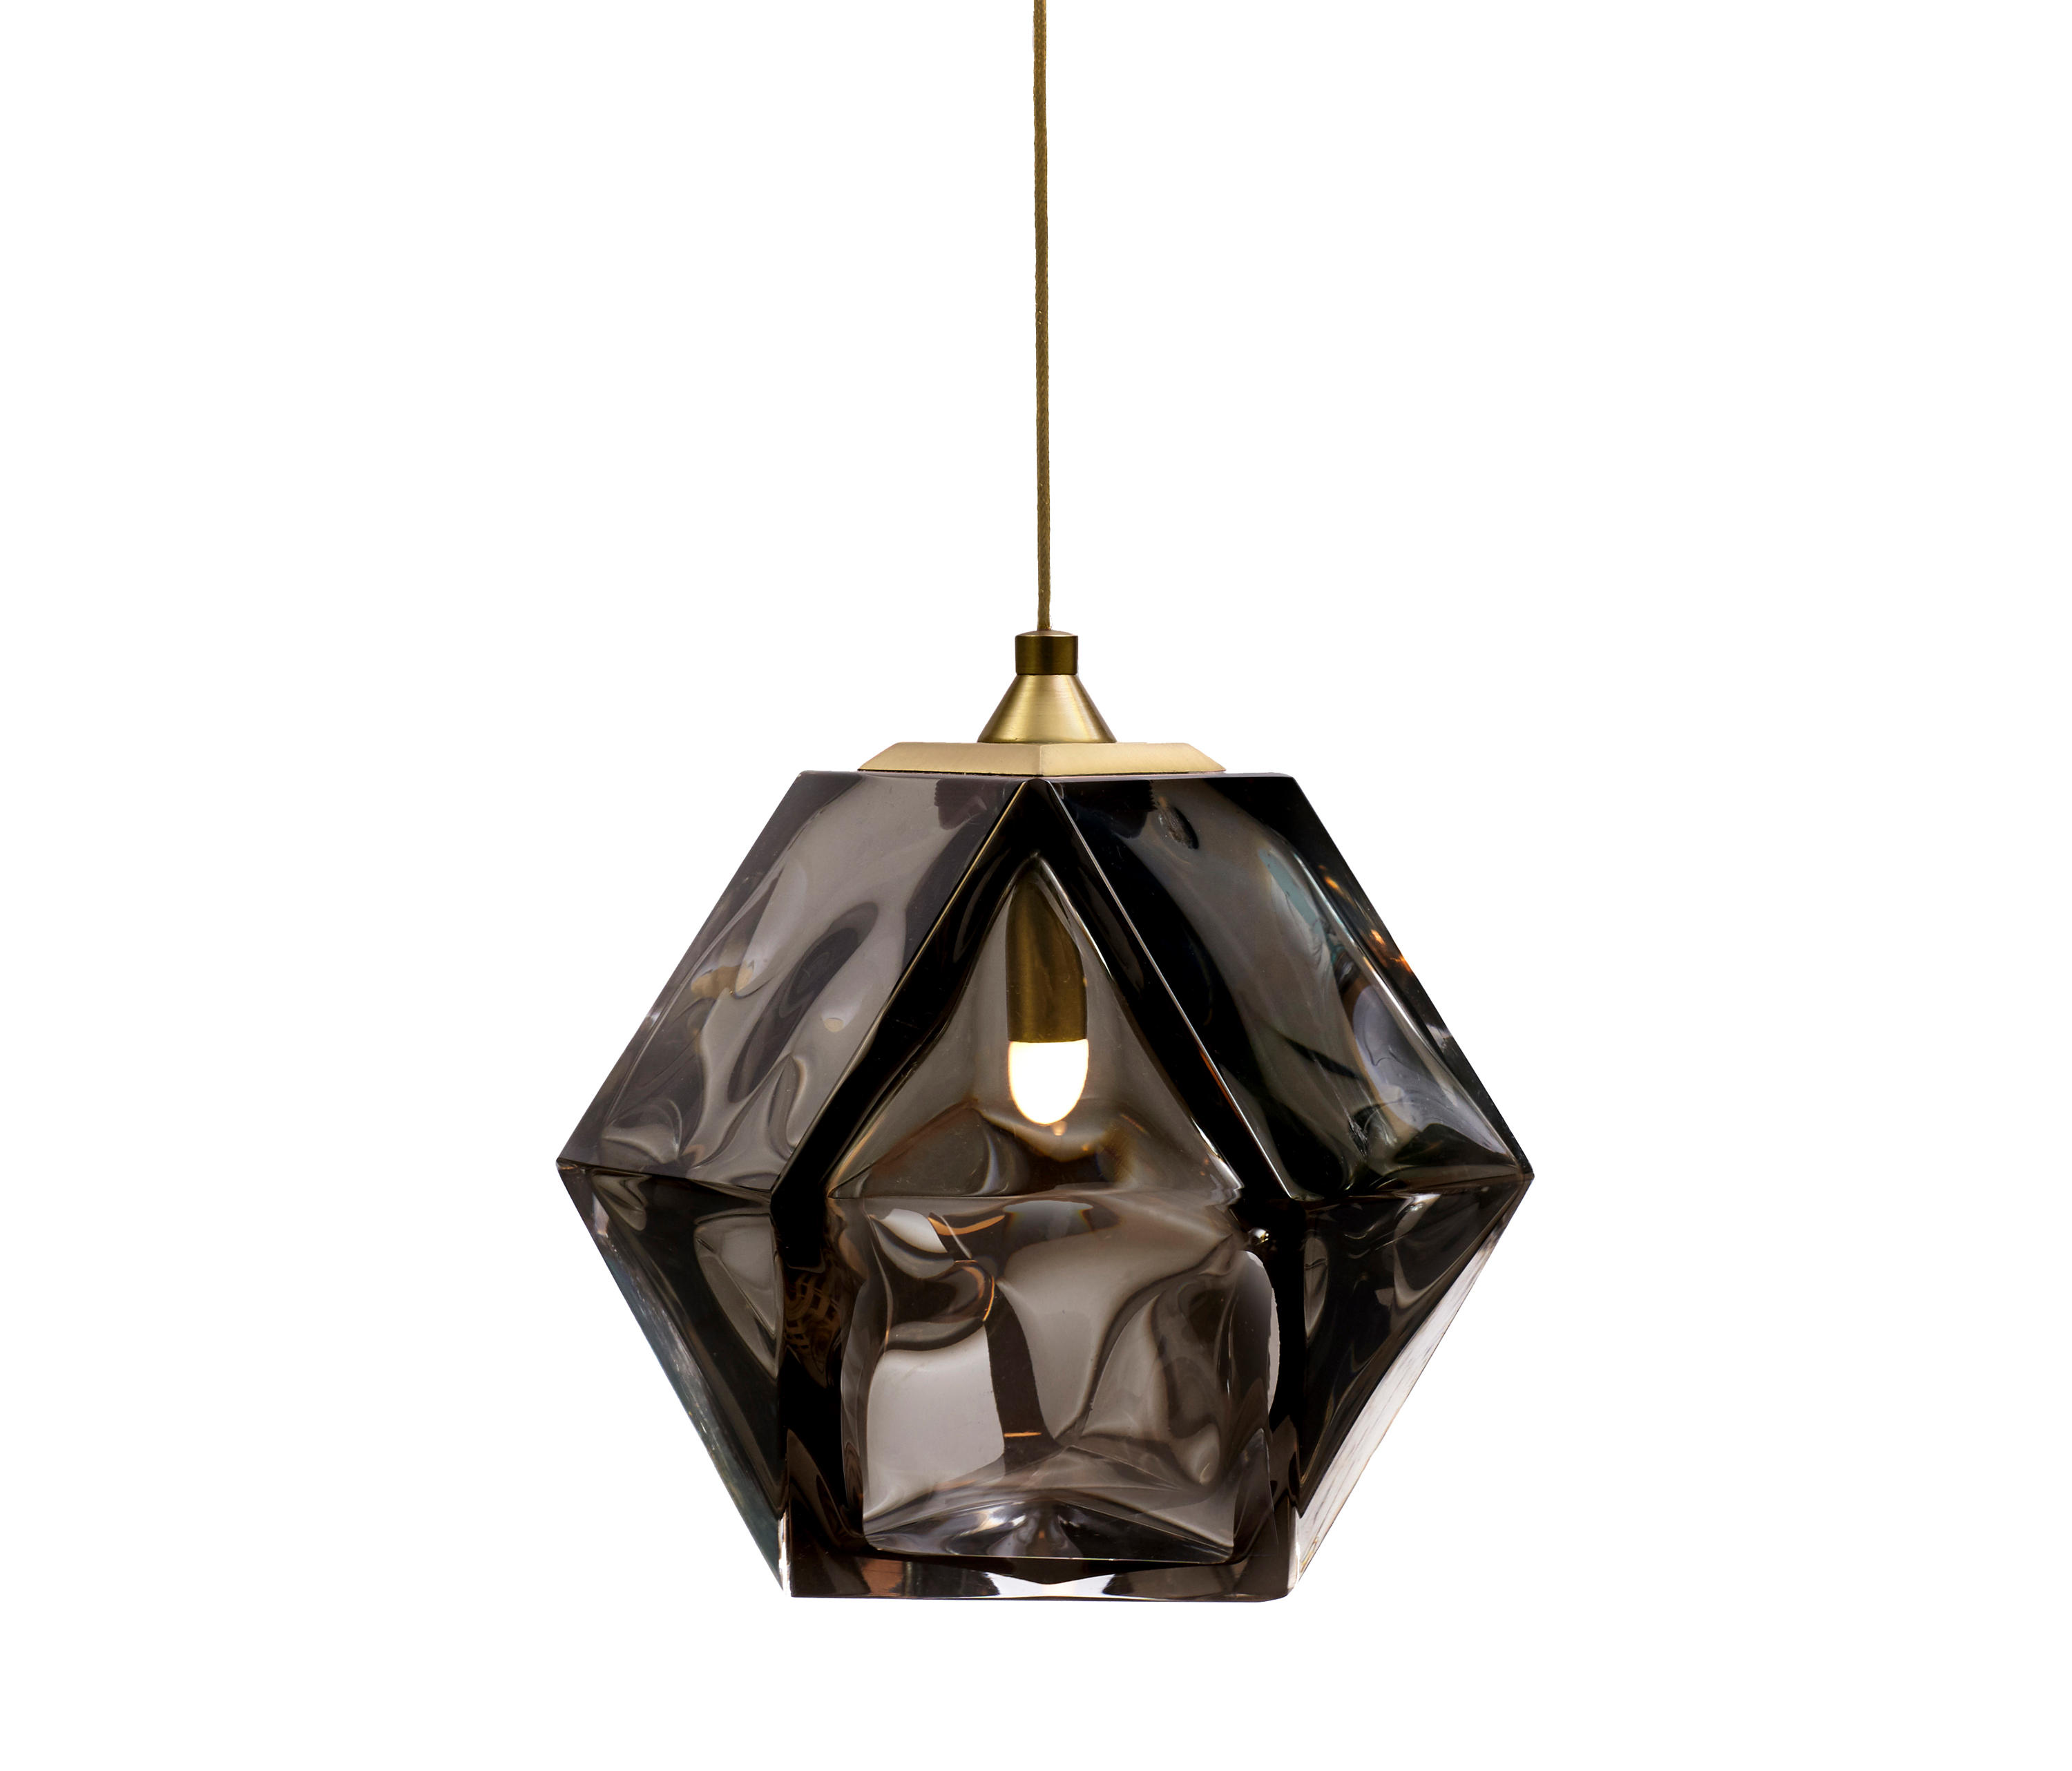 kinsey volp gray images clearance en allen lighting large us pendant shop glass ethan